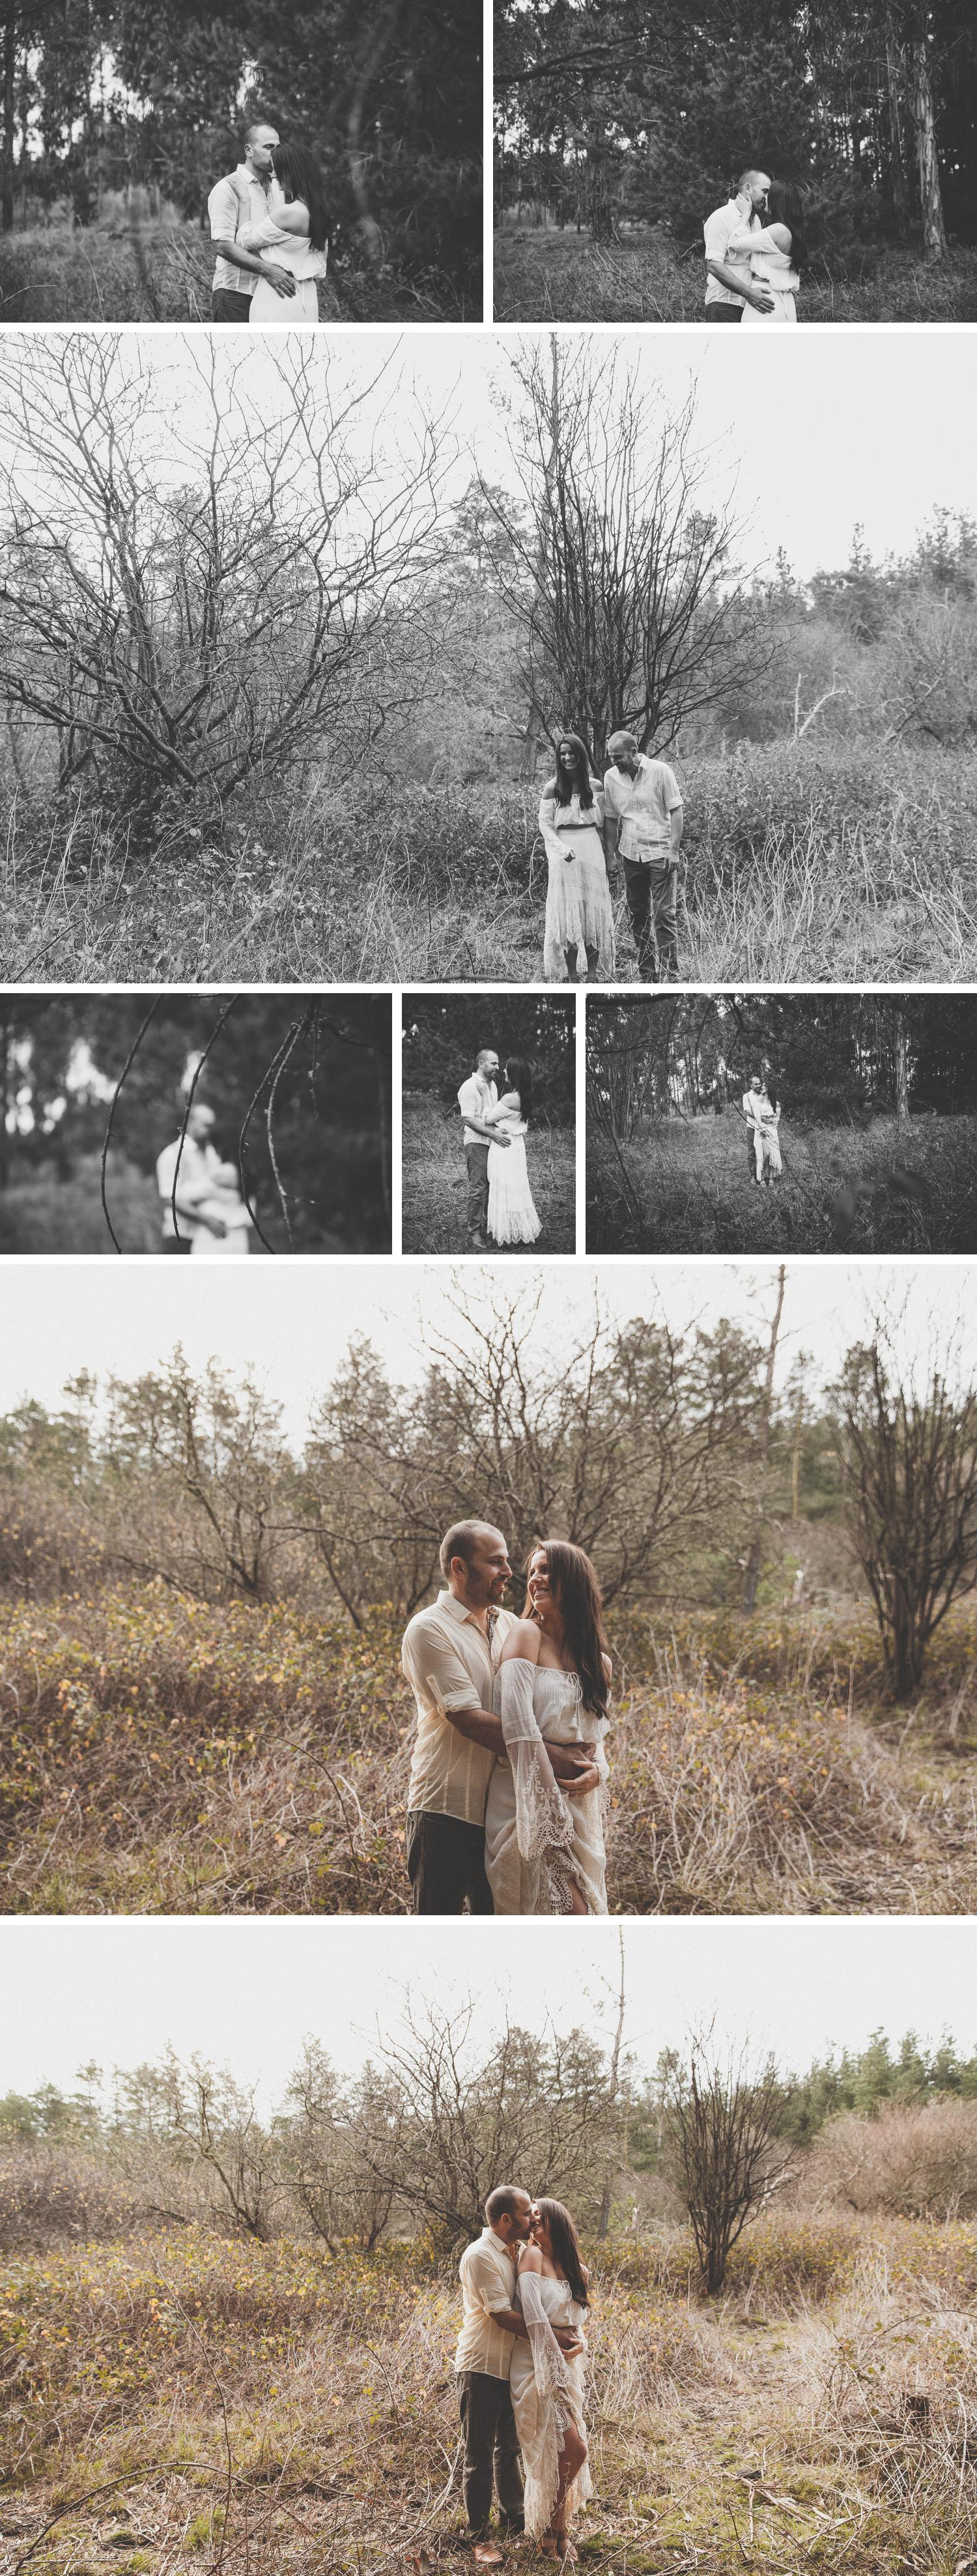 Forest Engagement Shoot, Gippsland Rural Wedding Engagement Photos, Bride and Groom in Trees Photo by Danae Studios